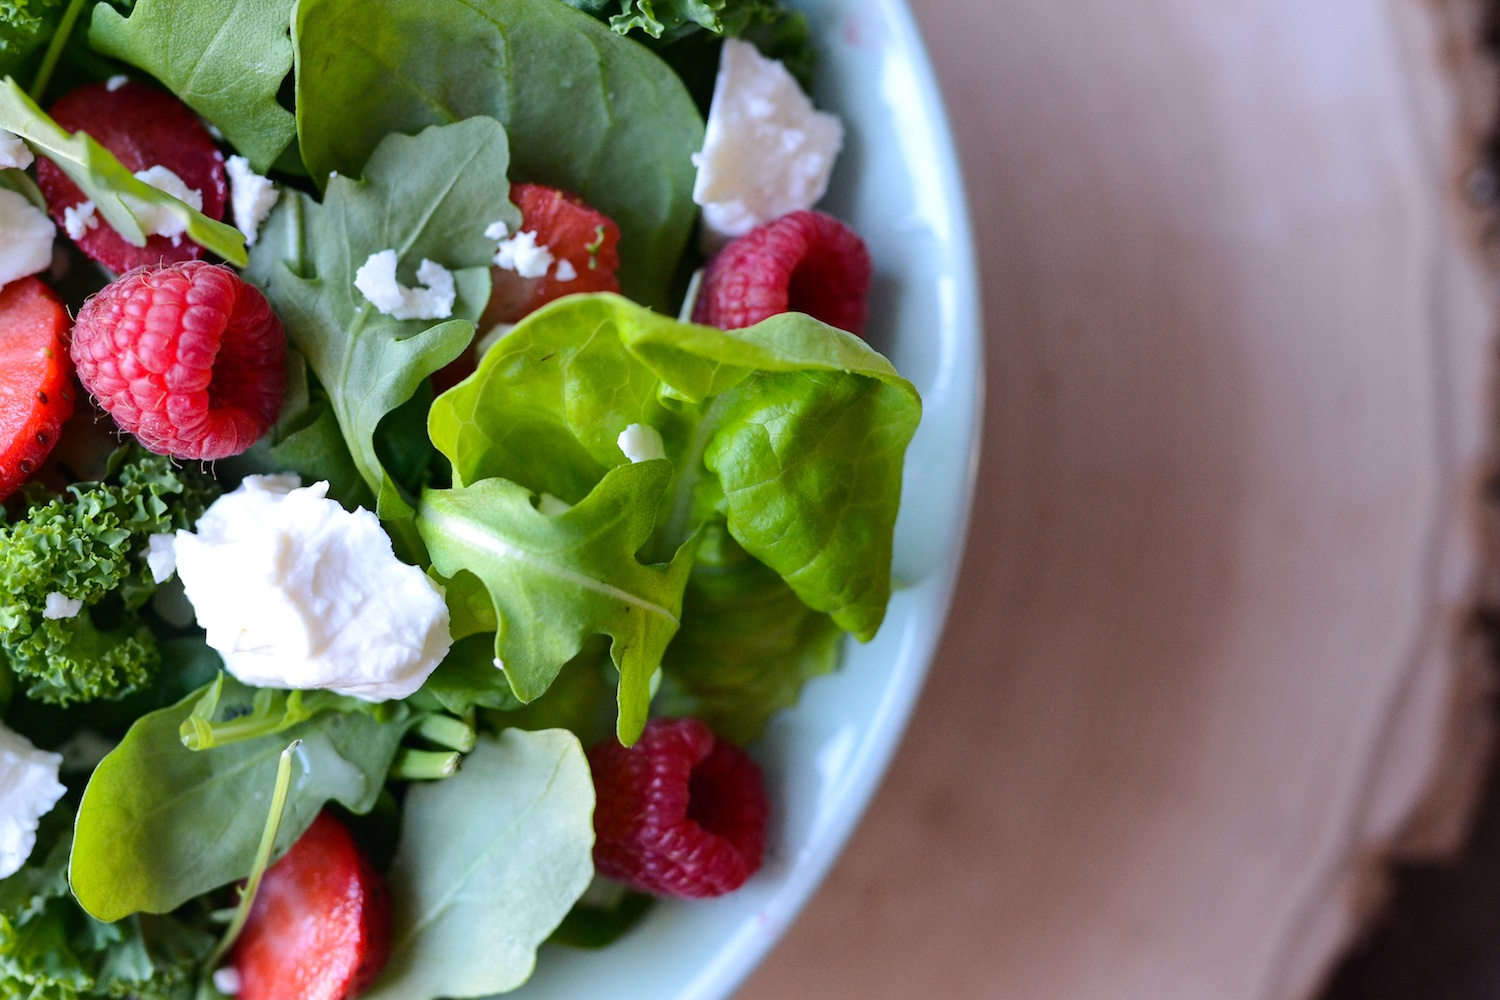 Spinach salad with kale with feta, strawberries and raspberries